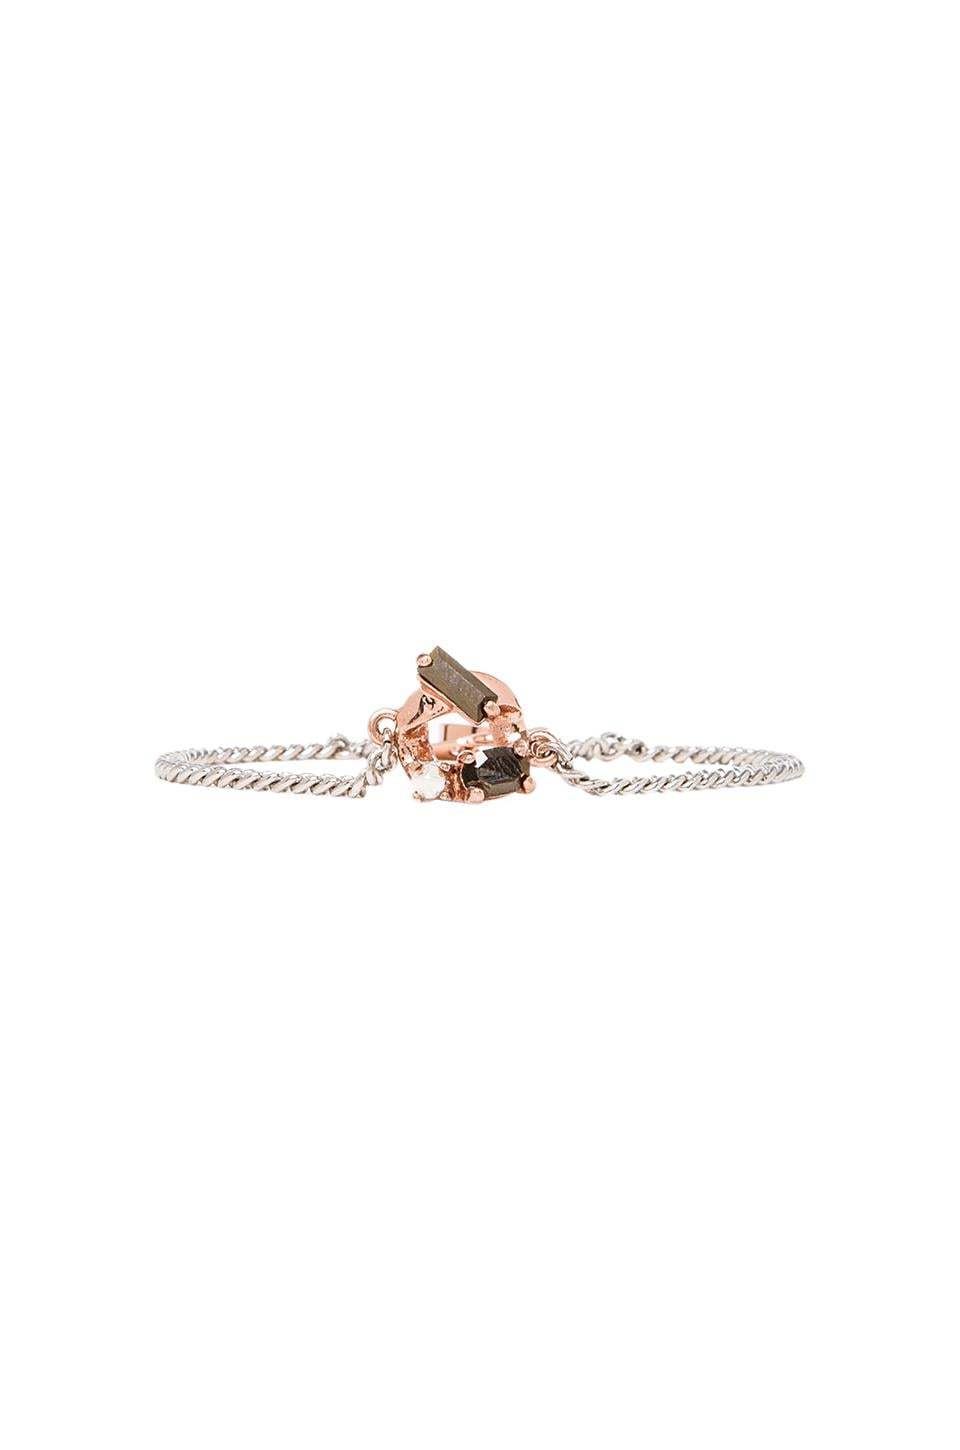 Marc by Marc Jacobs Embellished Tiny Bracelet in Argento & Rose Gold